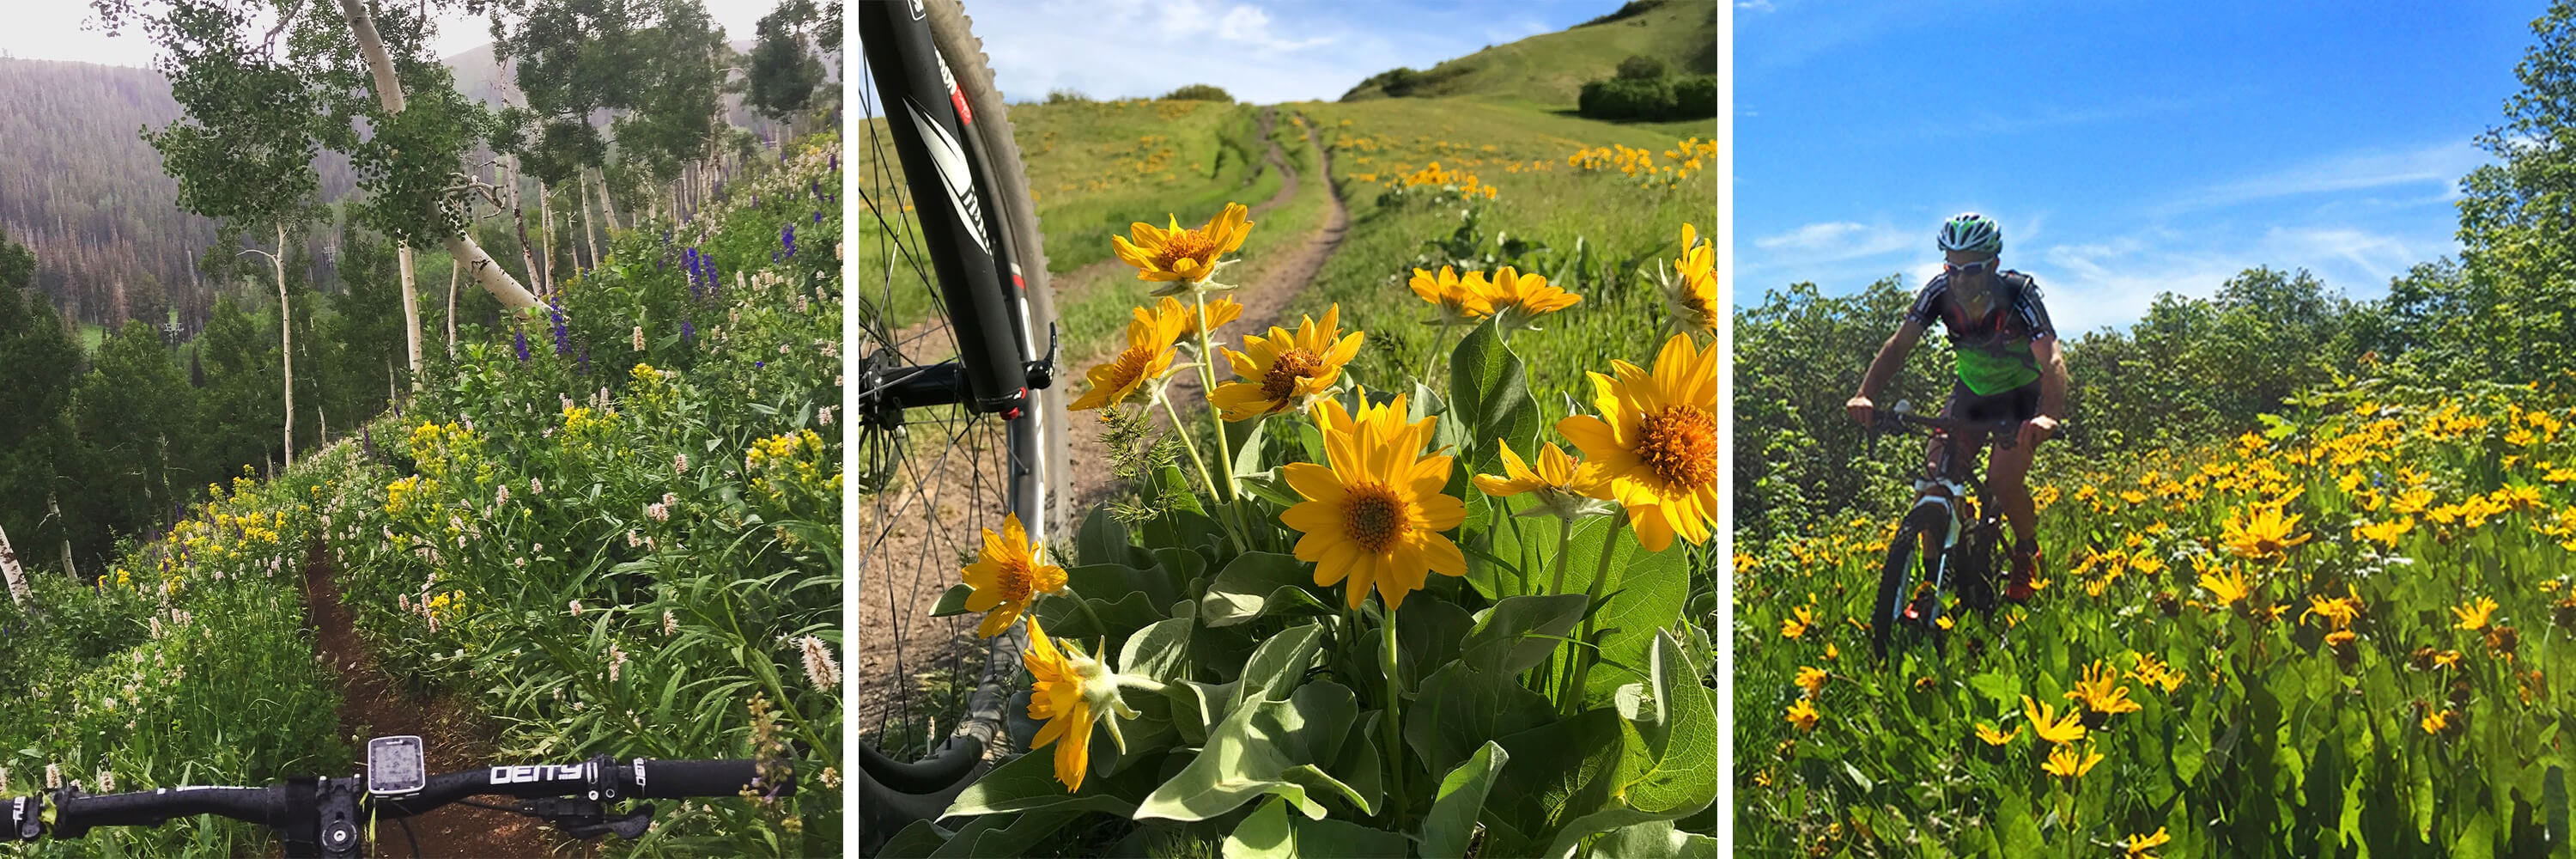 Contender Bicycles Spring Fever Photo Contest